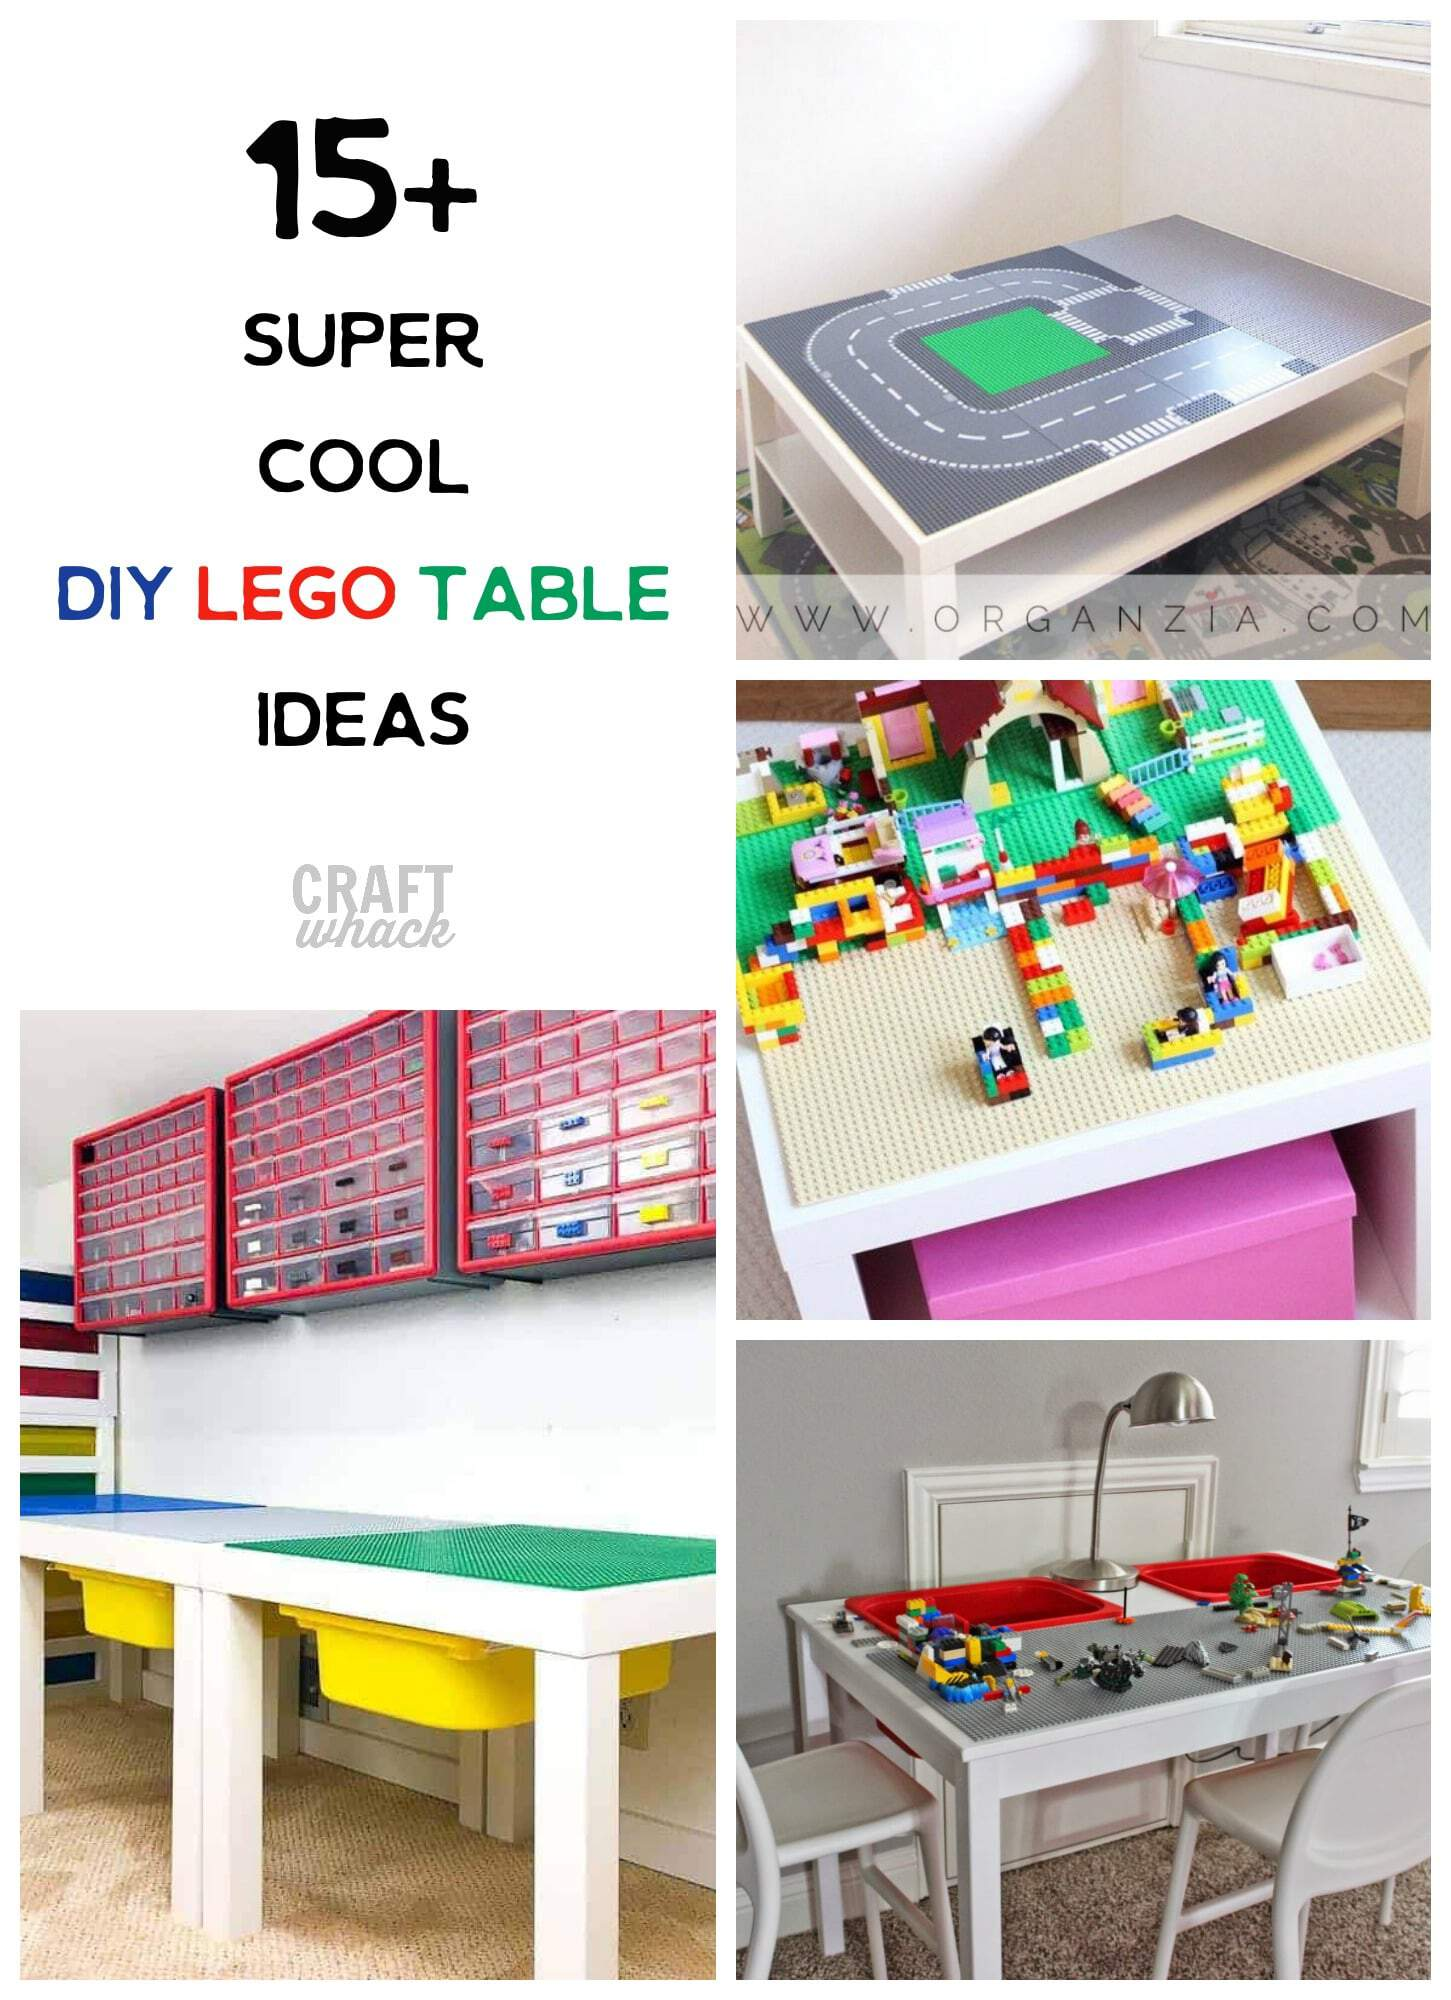 Creative DIY Lego tables